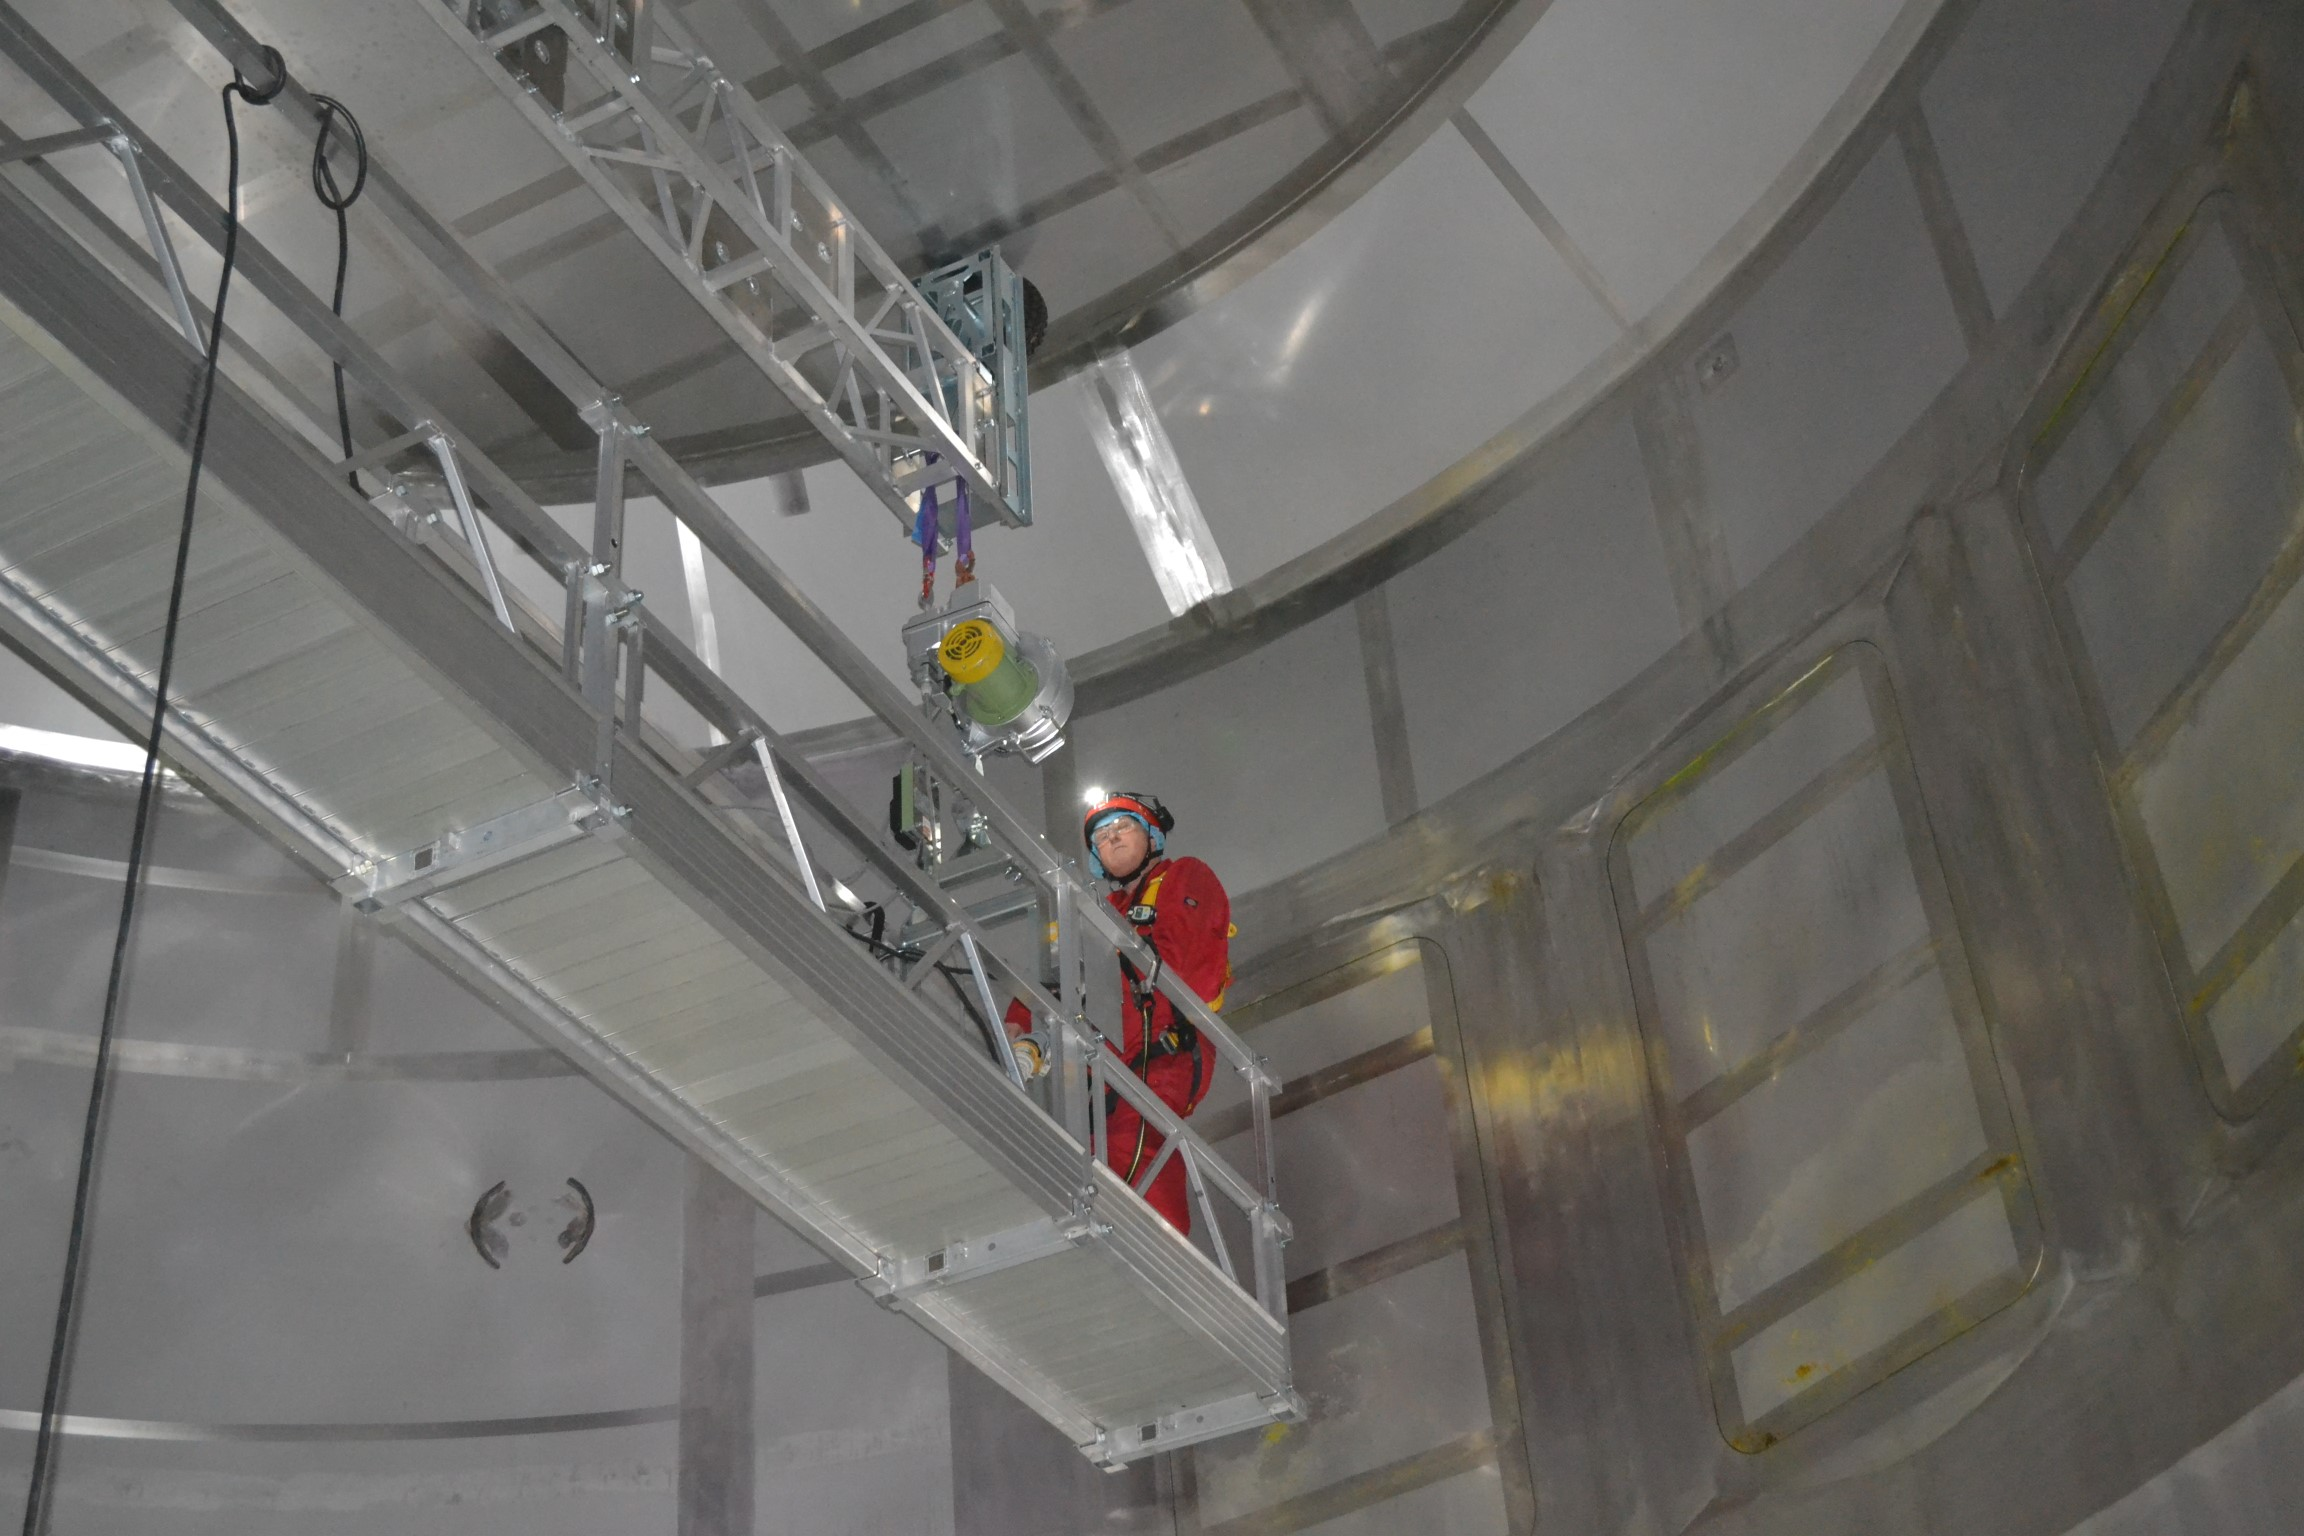 Spray dryer testing and inspection of the chamber and cone using our unique access platform checking for leaks and cracks,